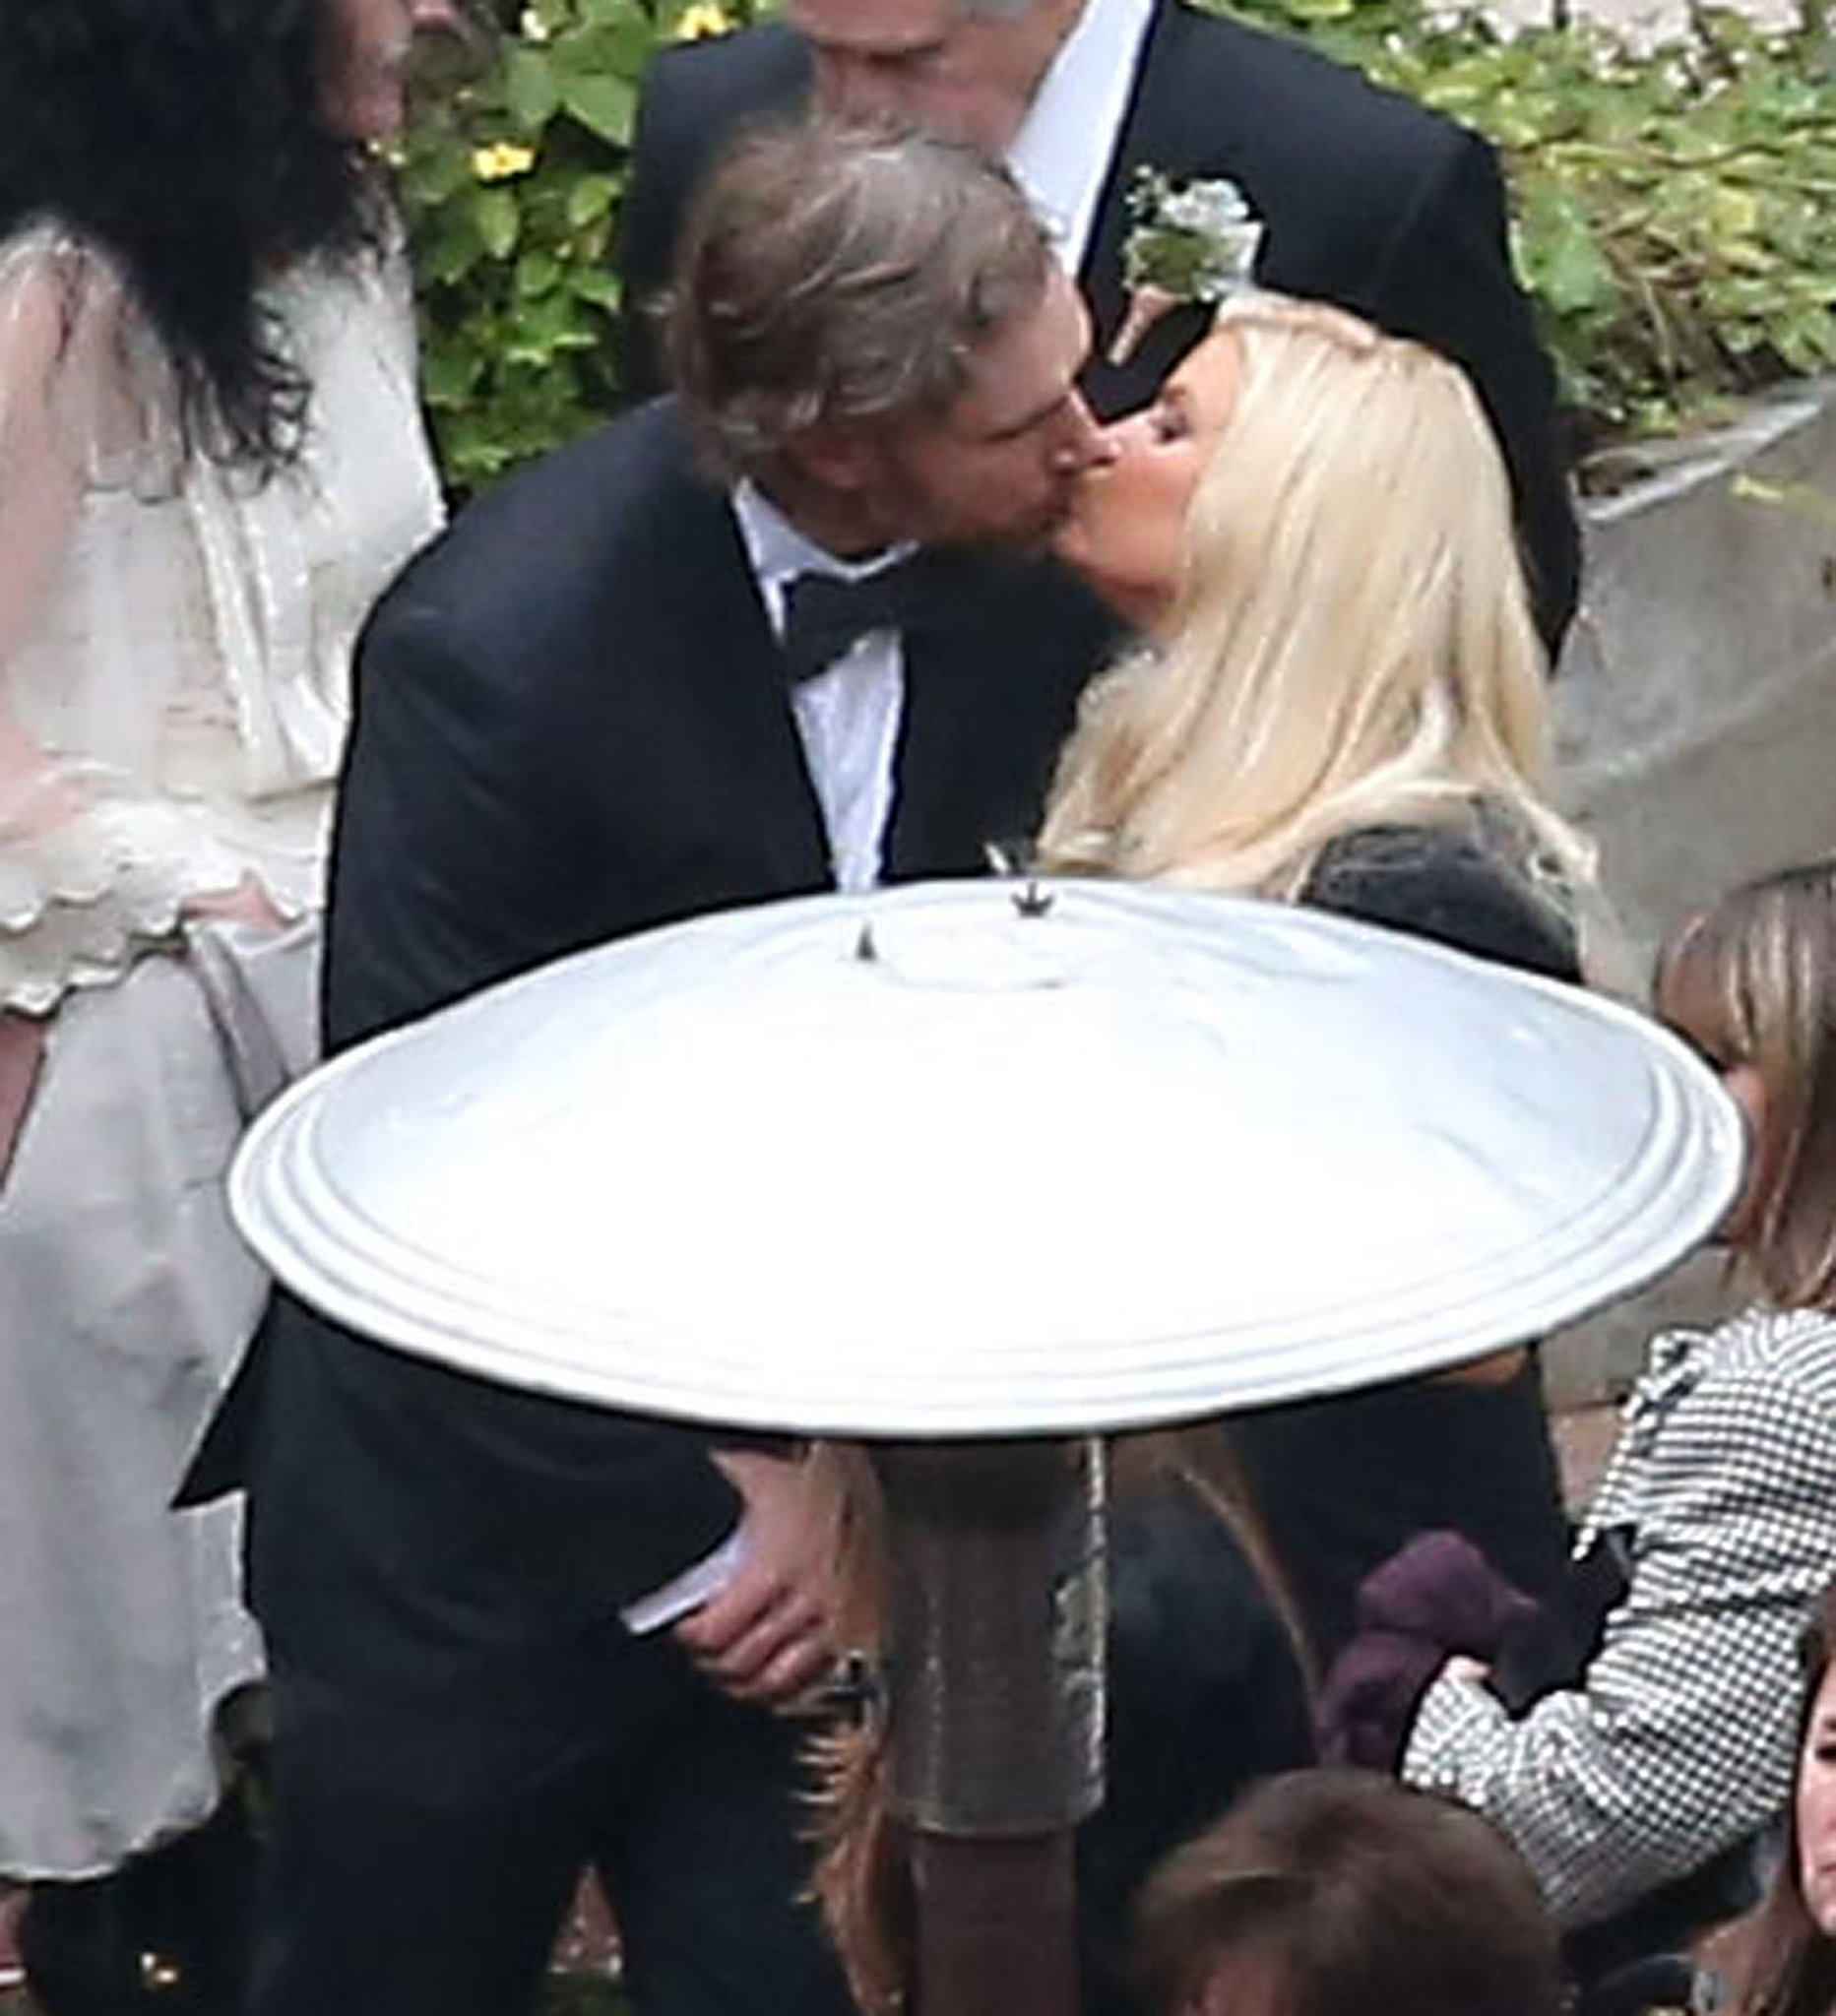 They shared a cute kiss at the December 2012 wedding of Jessica's best friend, CaCee Cobb, and actor Donald Faison in LA.